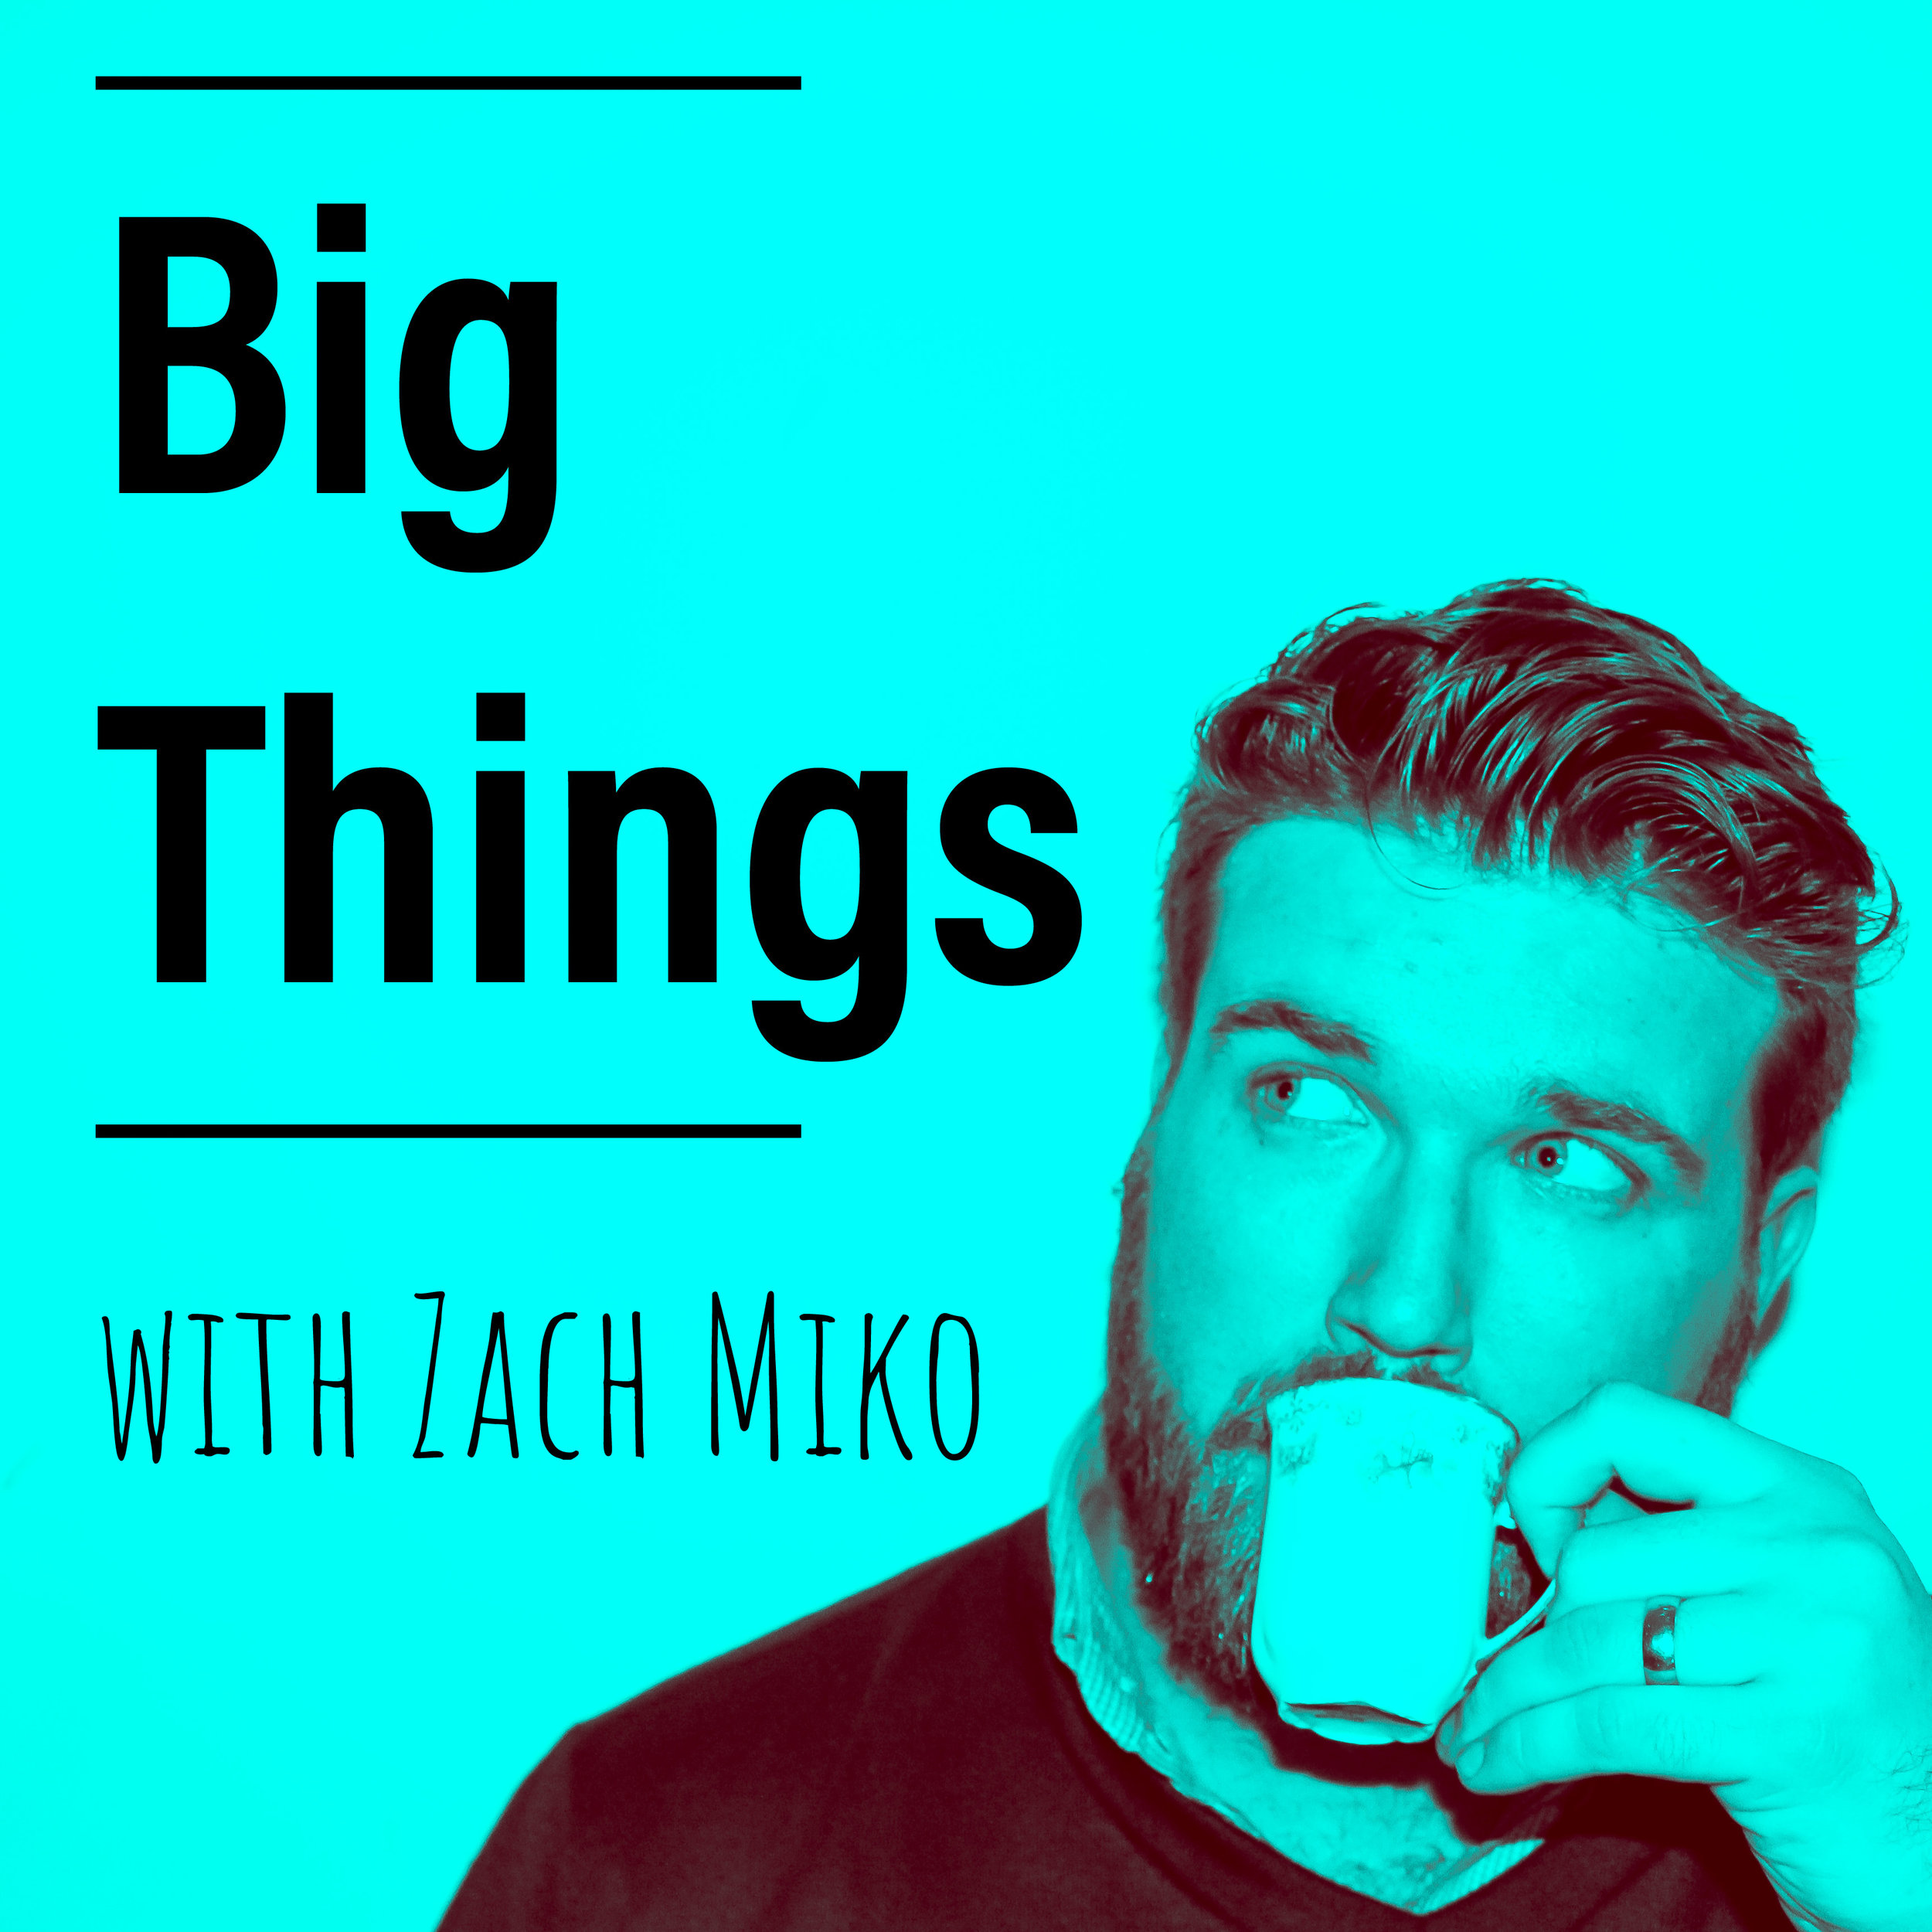 Zach's podcast, Big Things, launches February 19, 2018 wherever fine podcasts are sold.